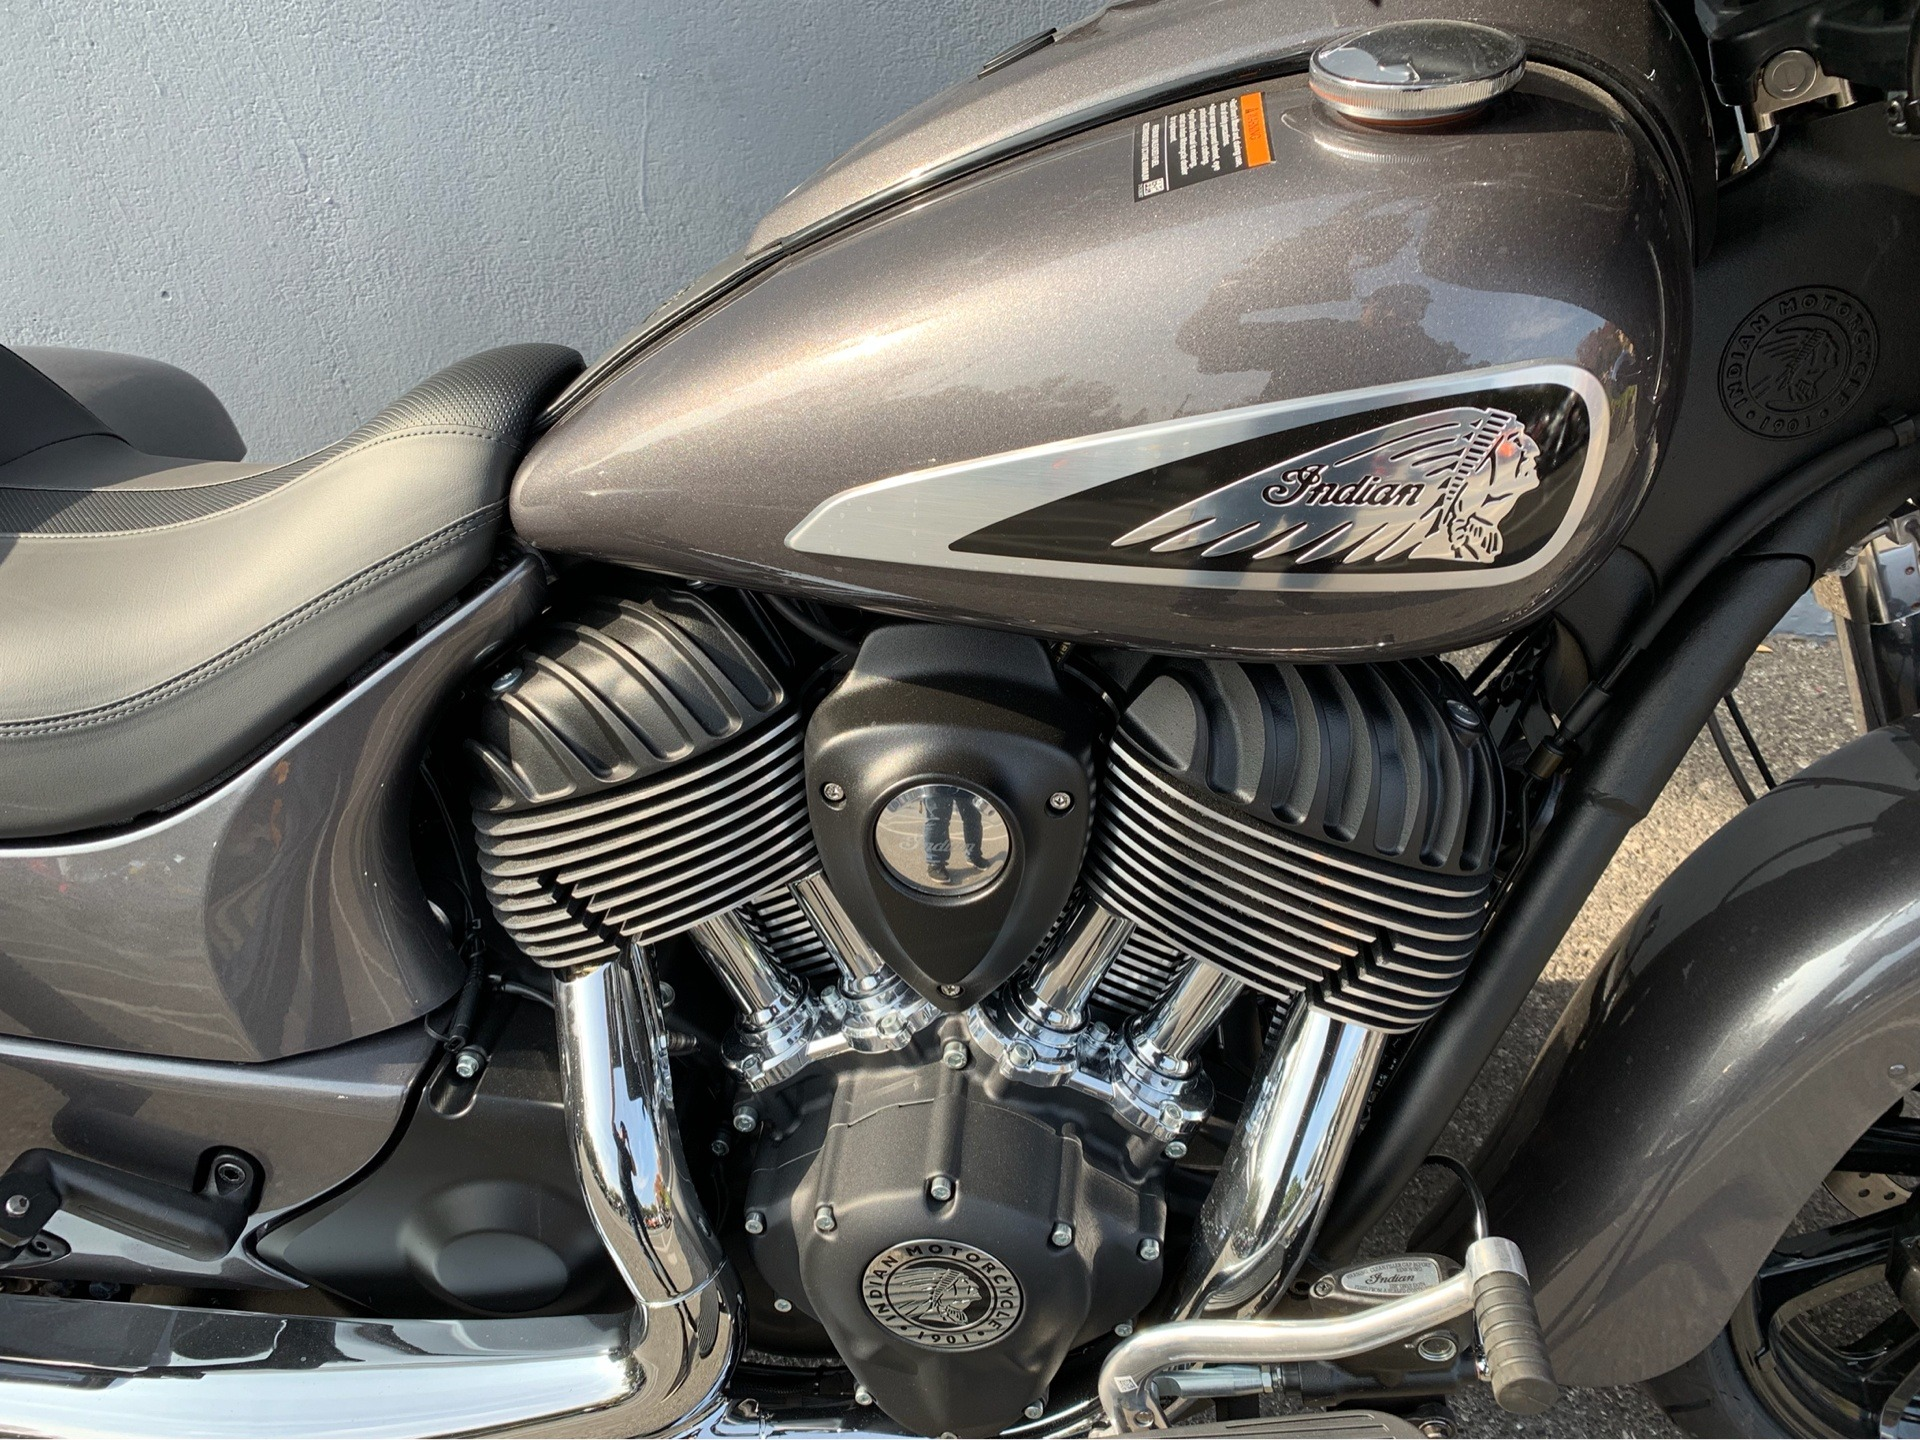 2019 Indian Chieftain® ABS in San Jose, California